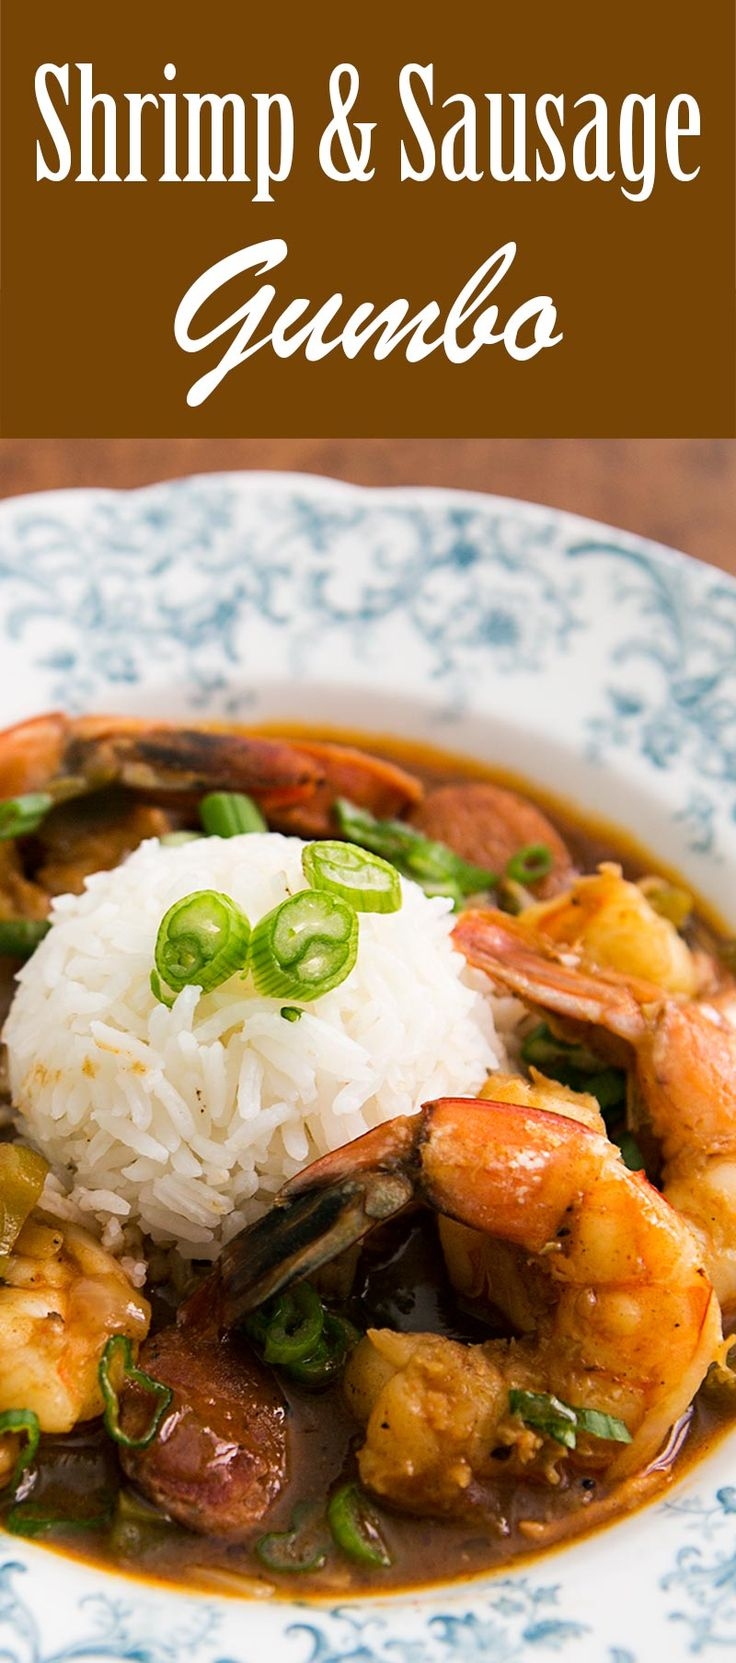 Cajun style shrimp gumbo with andouille sausage. Perfect for Mardis Gras!